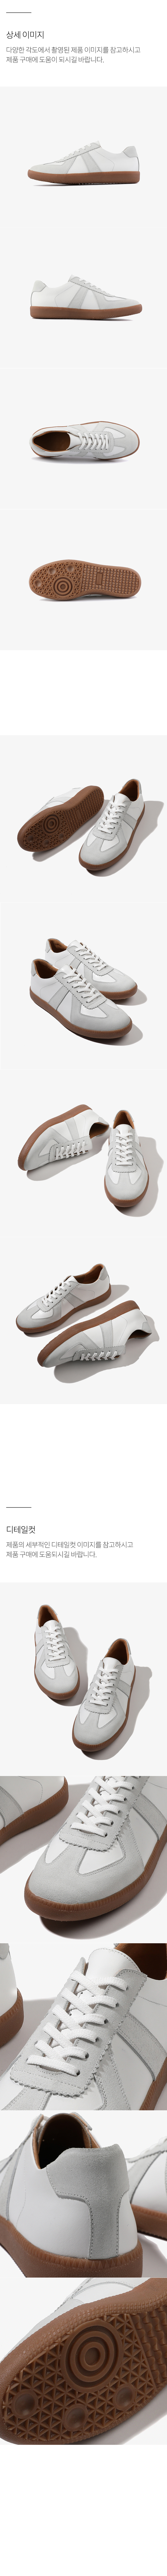 피렌체 아뜨리에(FIRENZE ATELIER) 2nd Atelier German Army Trainers 2NDF 1400W [WHITE]